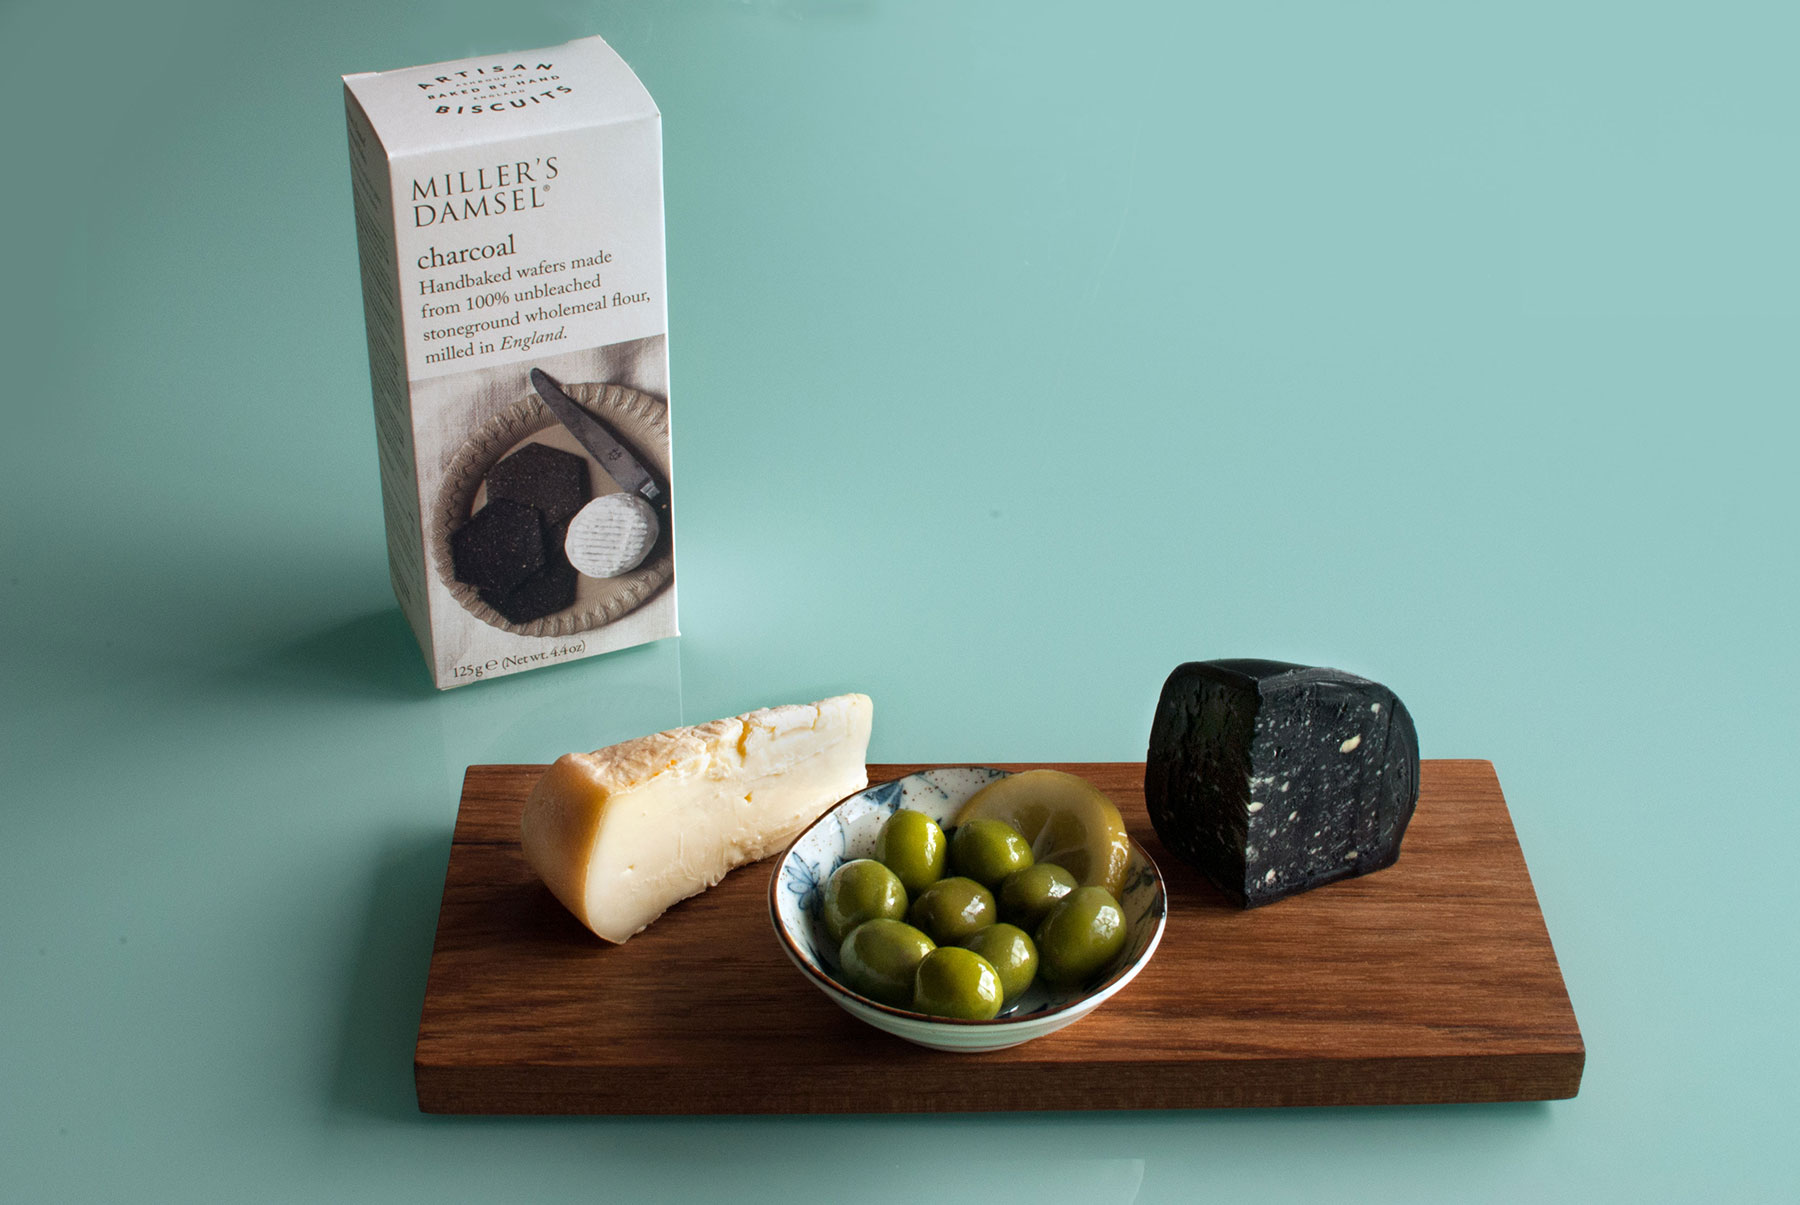 cheese, cheeseboard,olives, sicilian olives, isle of avalon cheese,charcoal cheese,the great british charcuterie co.,photography, food blog, photo by aunoralurra